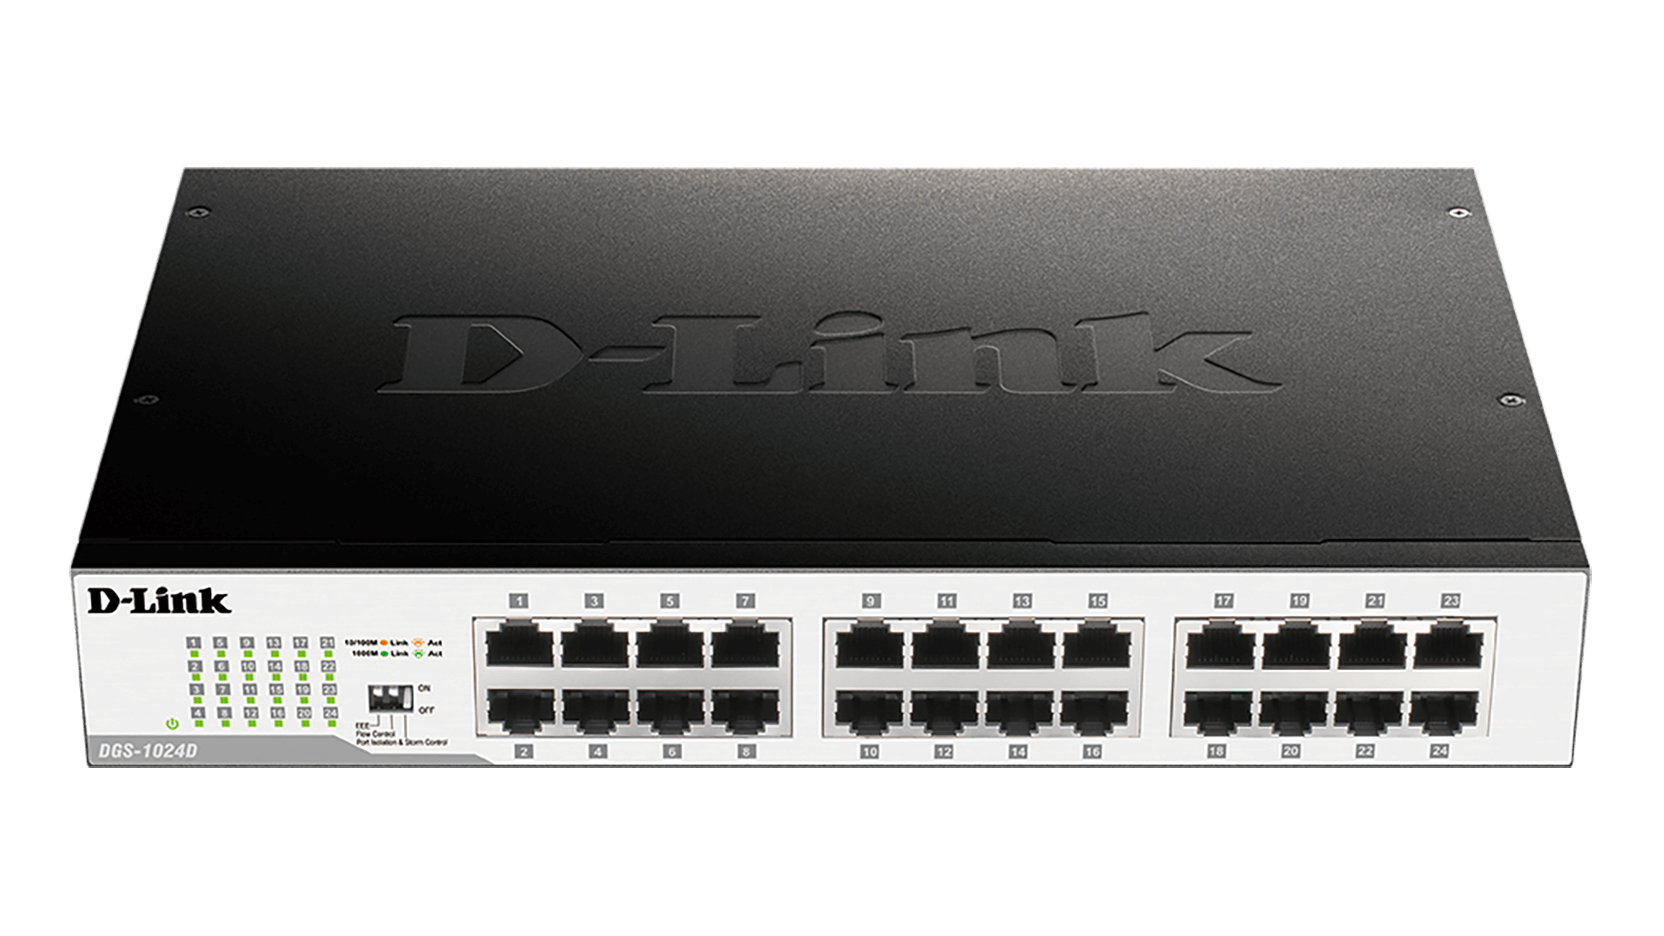 D-Link DGS-1024D switch No administrado Gigabit Ethernet (10/100/1000) Negro, Plata 1U